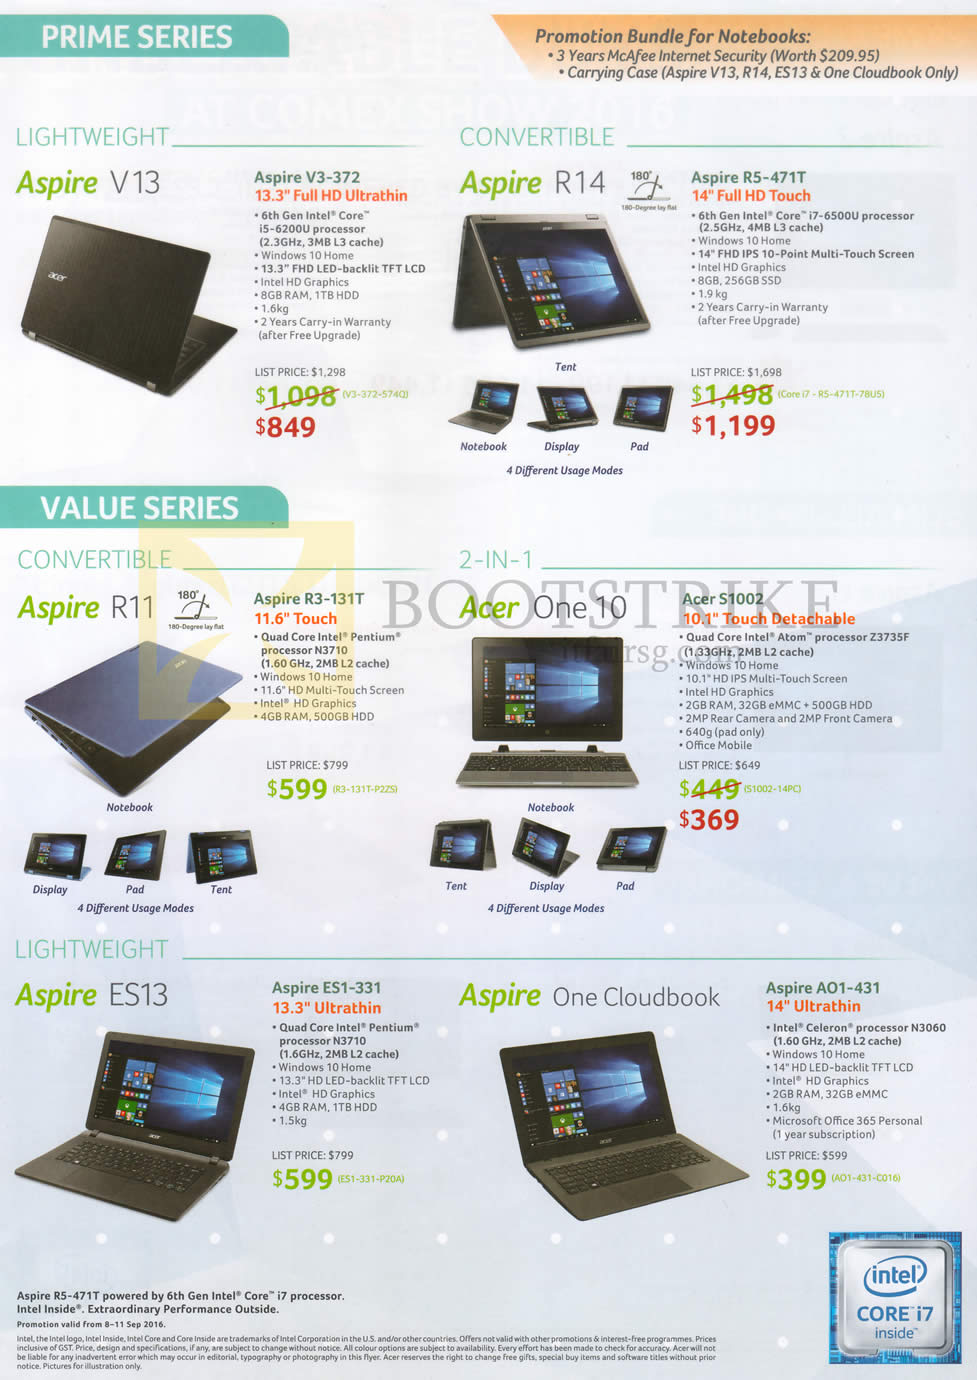 COMEX 2016 price list image brochure of Acer Notebooks Aspire V3-372, R5-471T, R3-131T, S1002, ES1-331, AO1-431, ES13, One Cloudbook